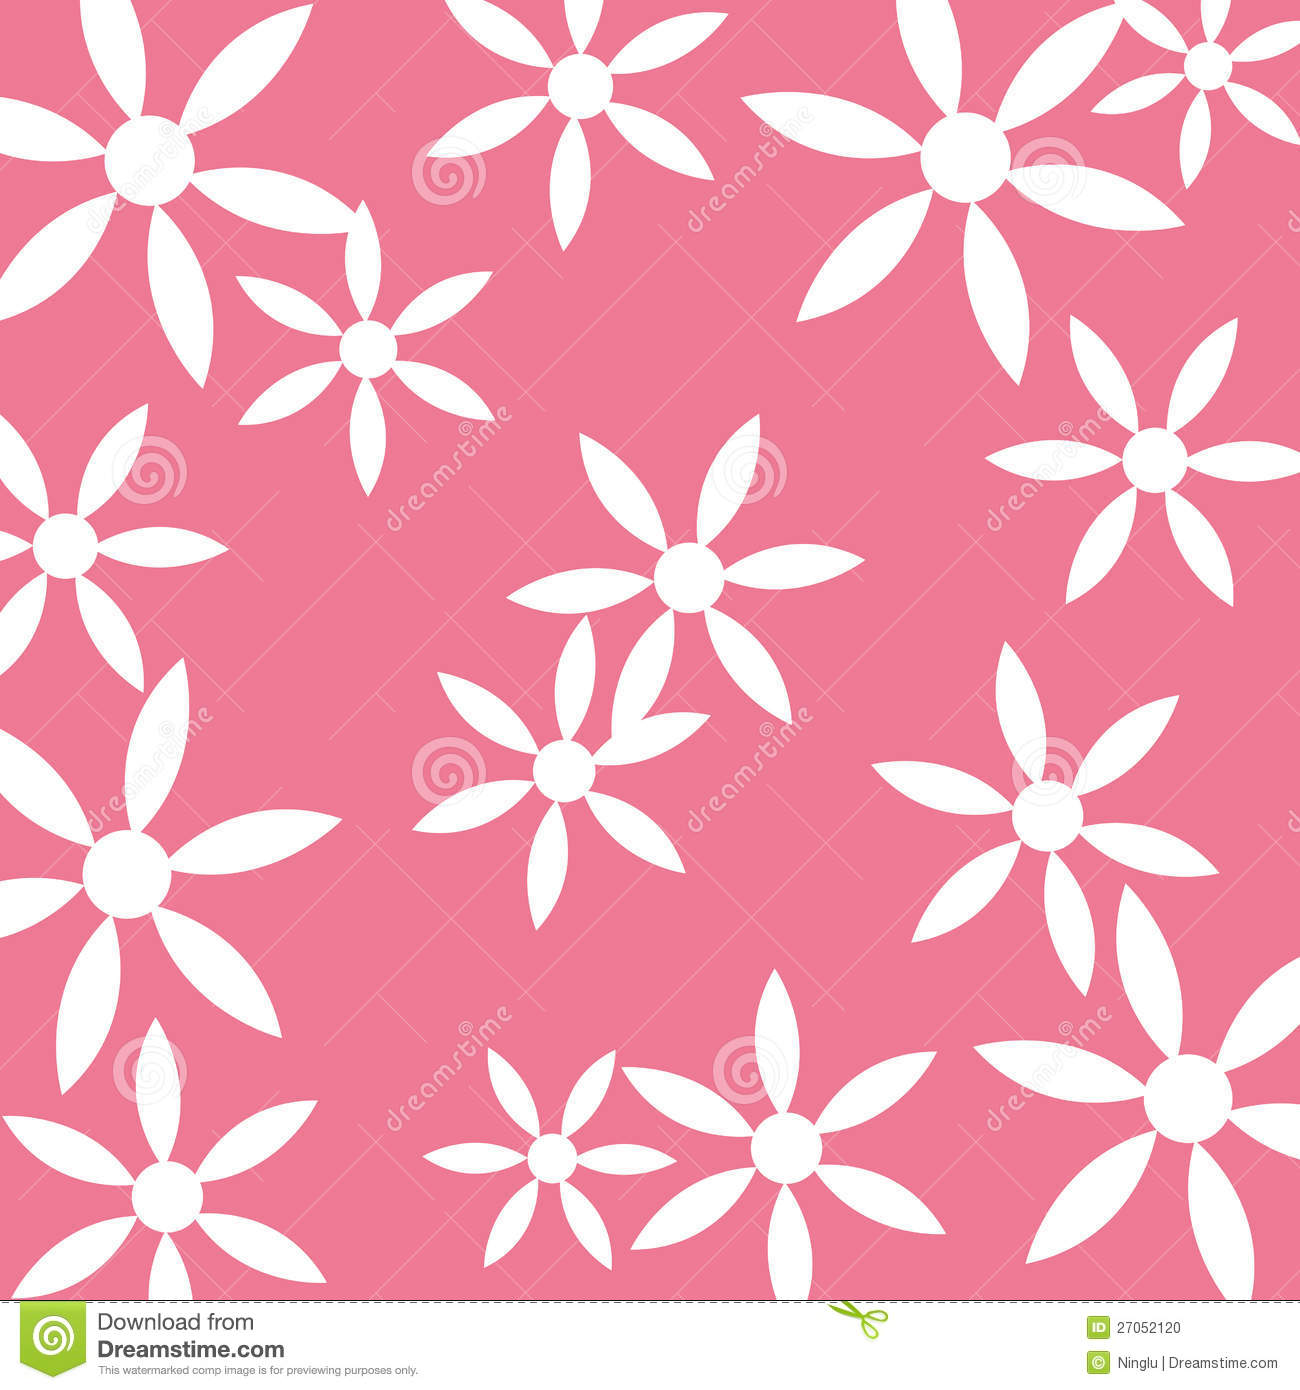 Cute Chevron Print Wallpaper White Flower Pattern Pink Background Stock Vector Image